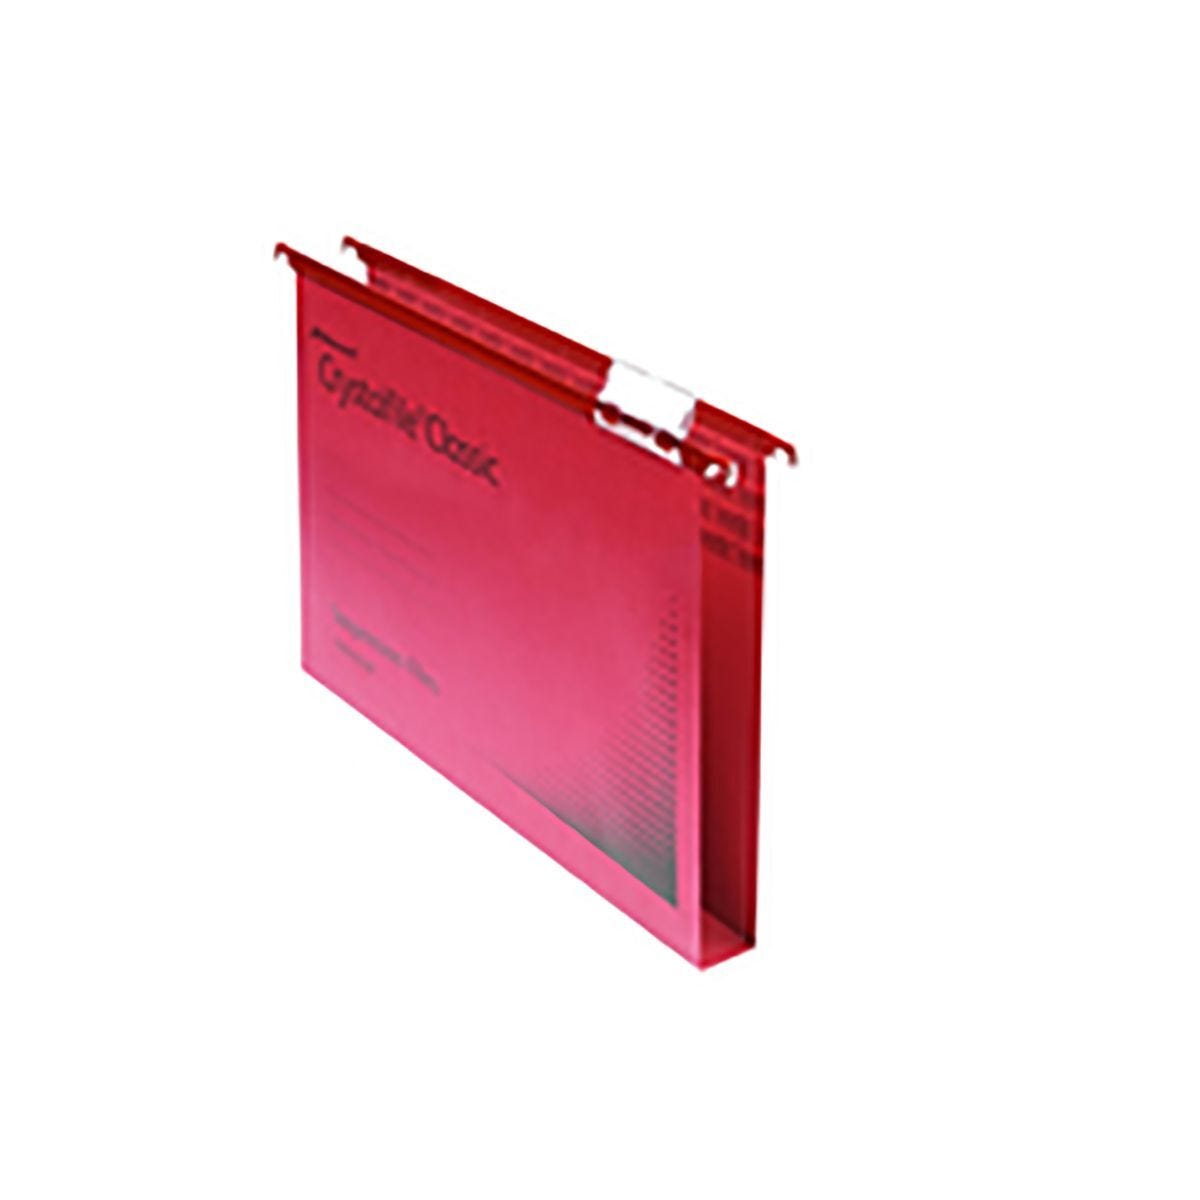 Rexel Crystalfile Classic Foolscap Suspension File 50mm Pack of 50 Red